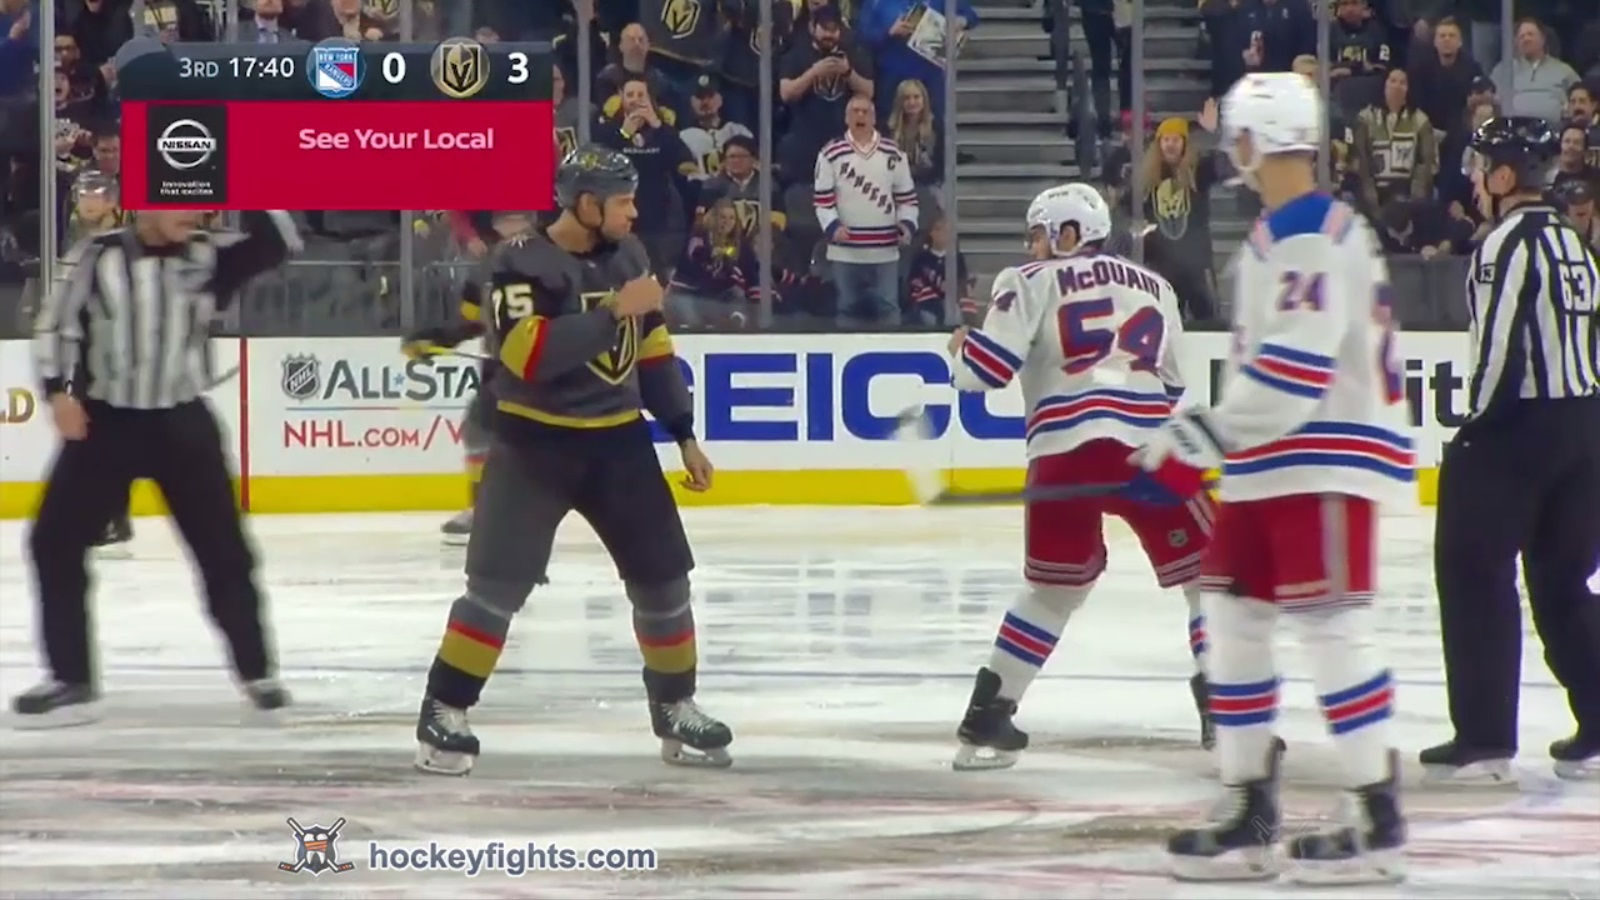 Ryan Reaves vs. Adam McQuaid